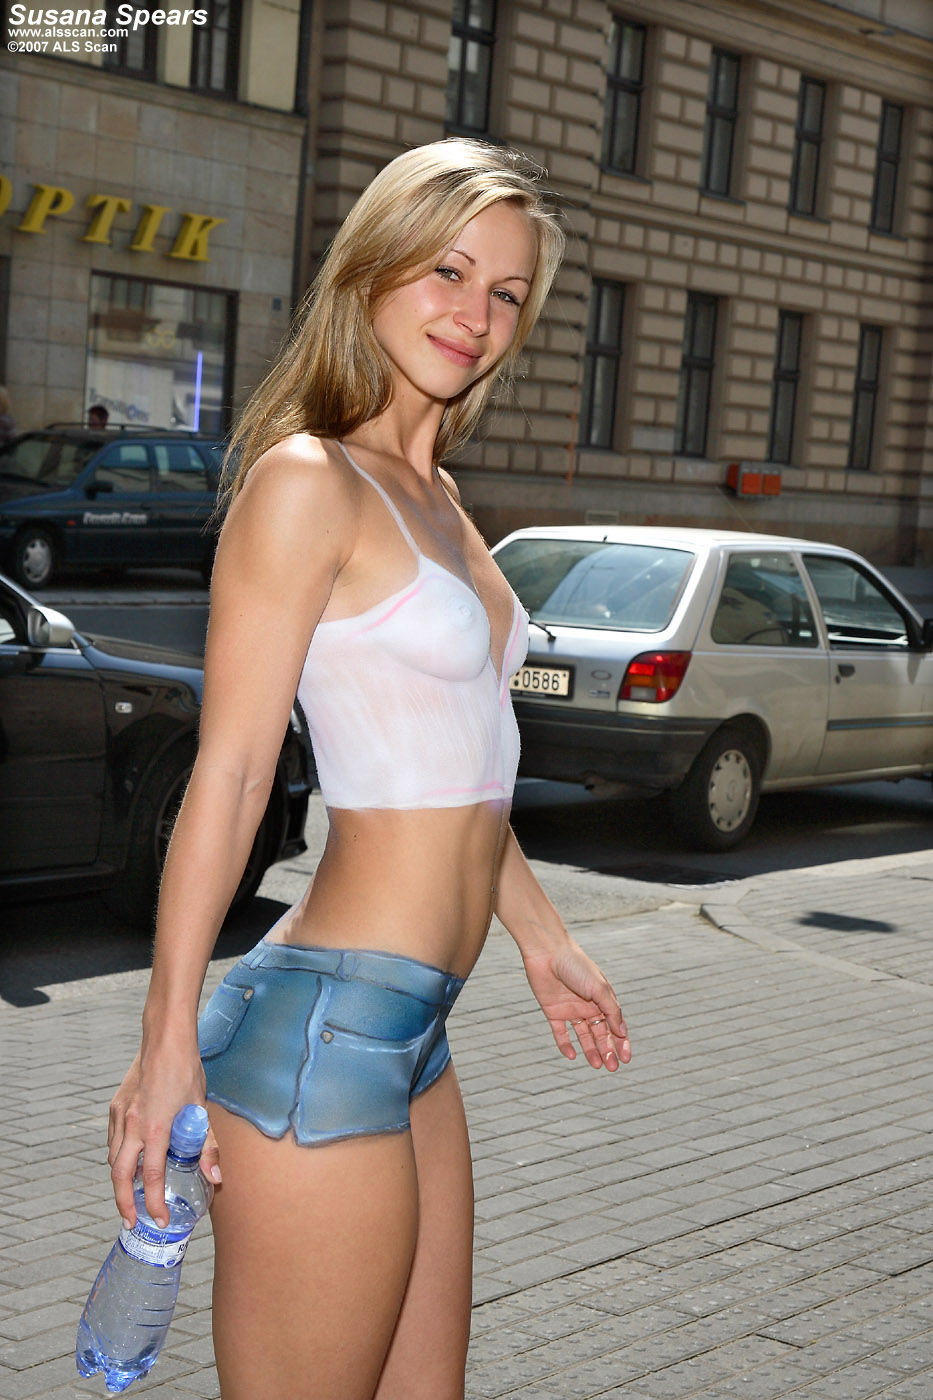 Susana - Susana Spears Walks Around Town with Painted On Outfit